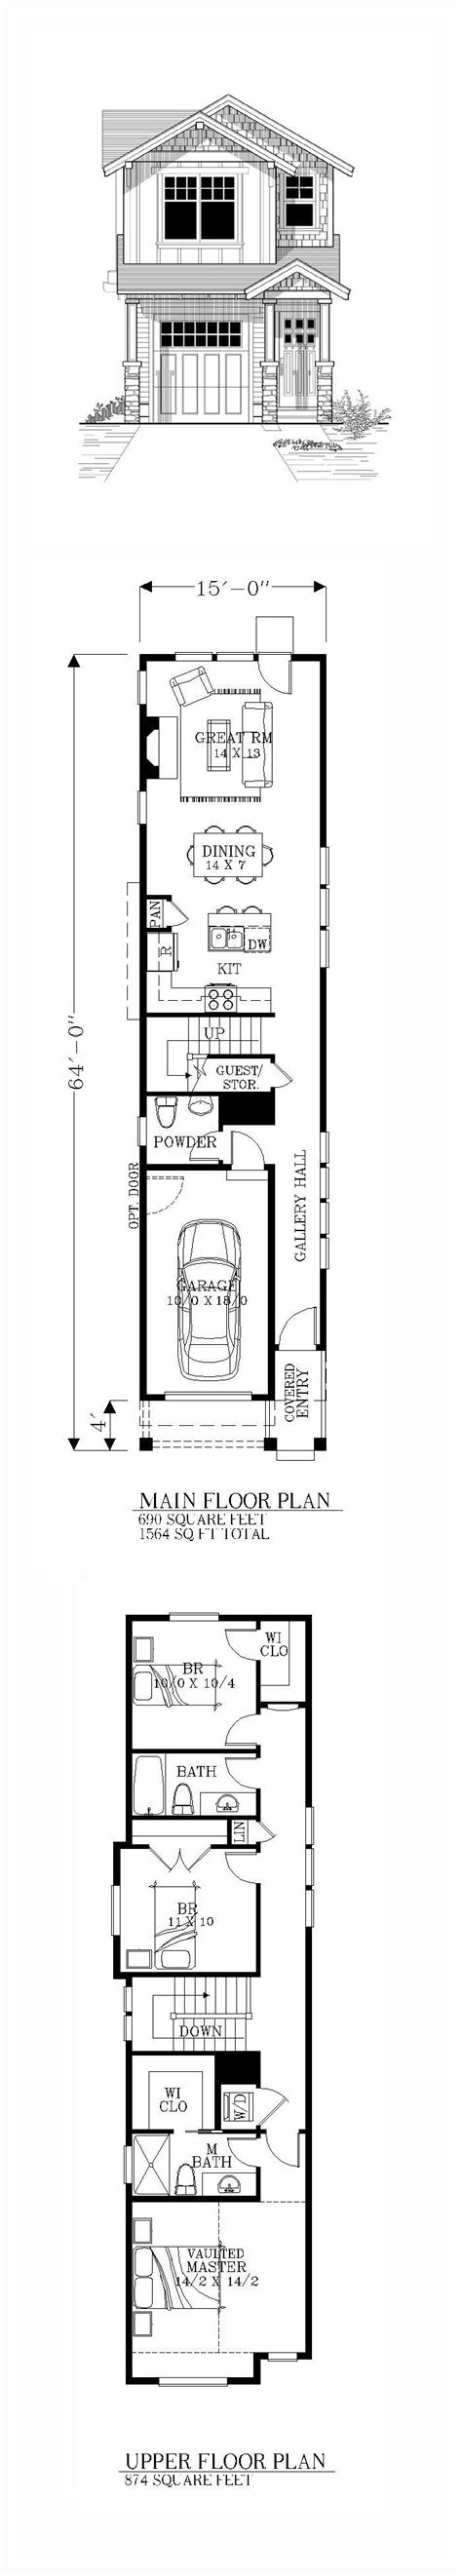 house plans for narrow lot best 25 narrow house plans ideas on pinterest